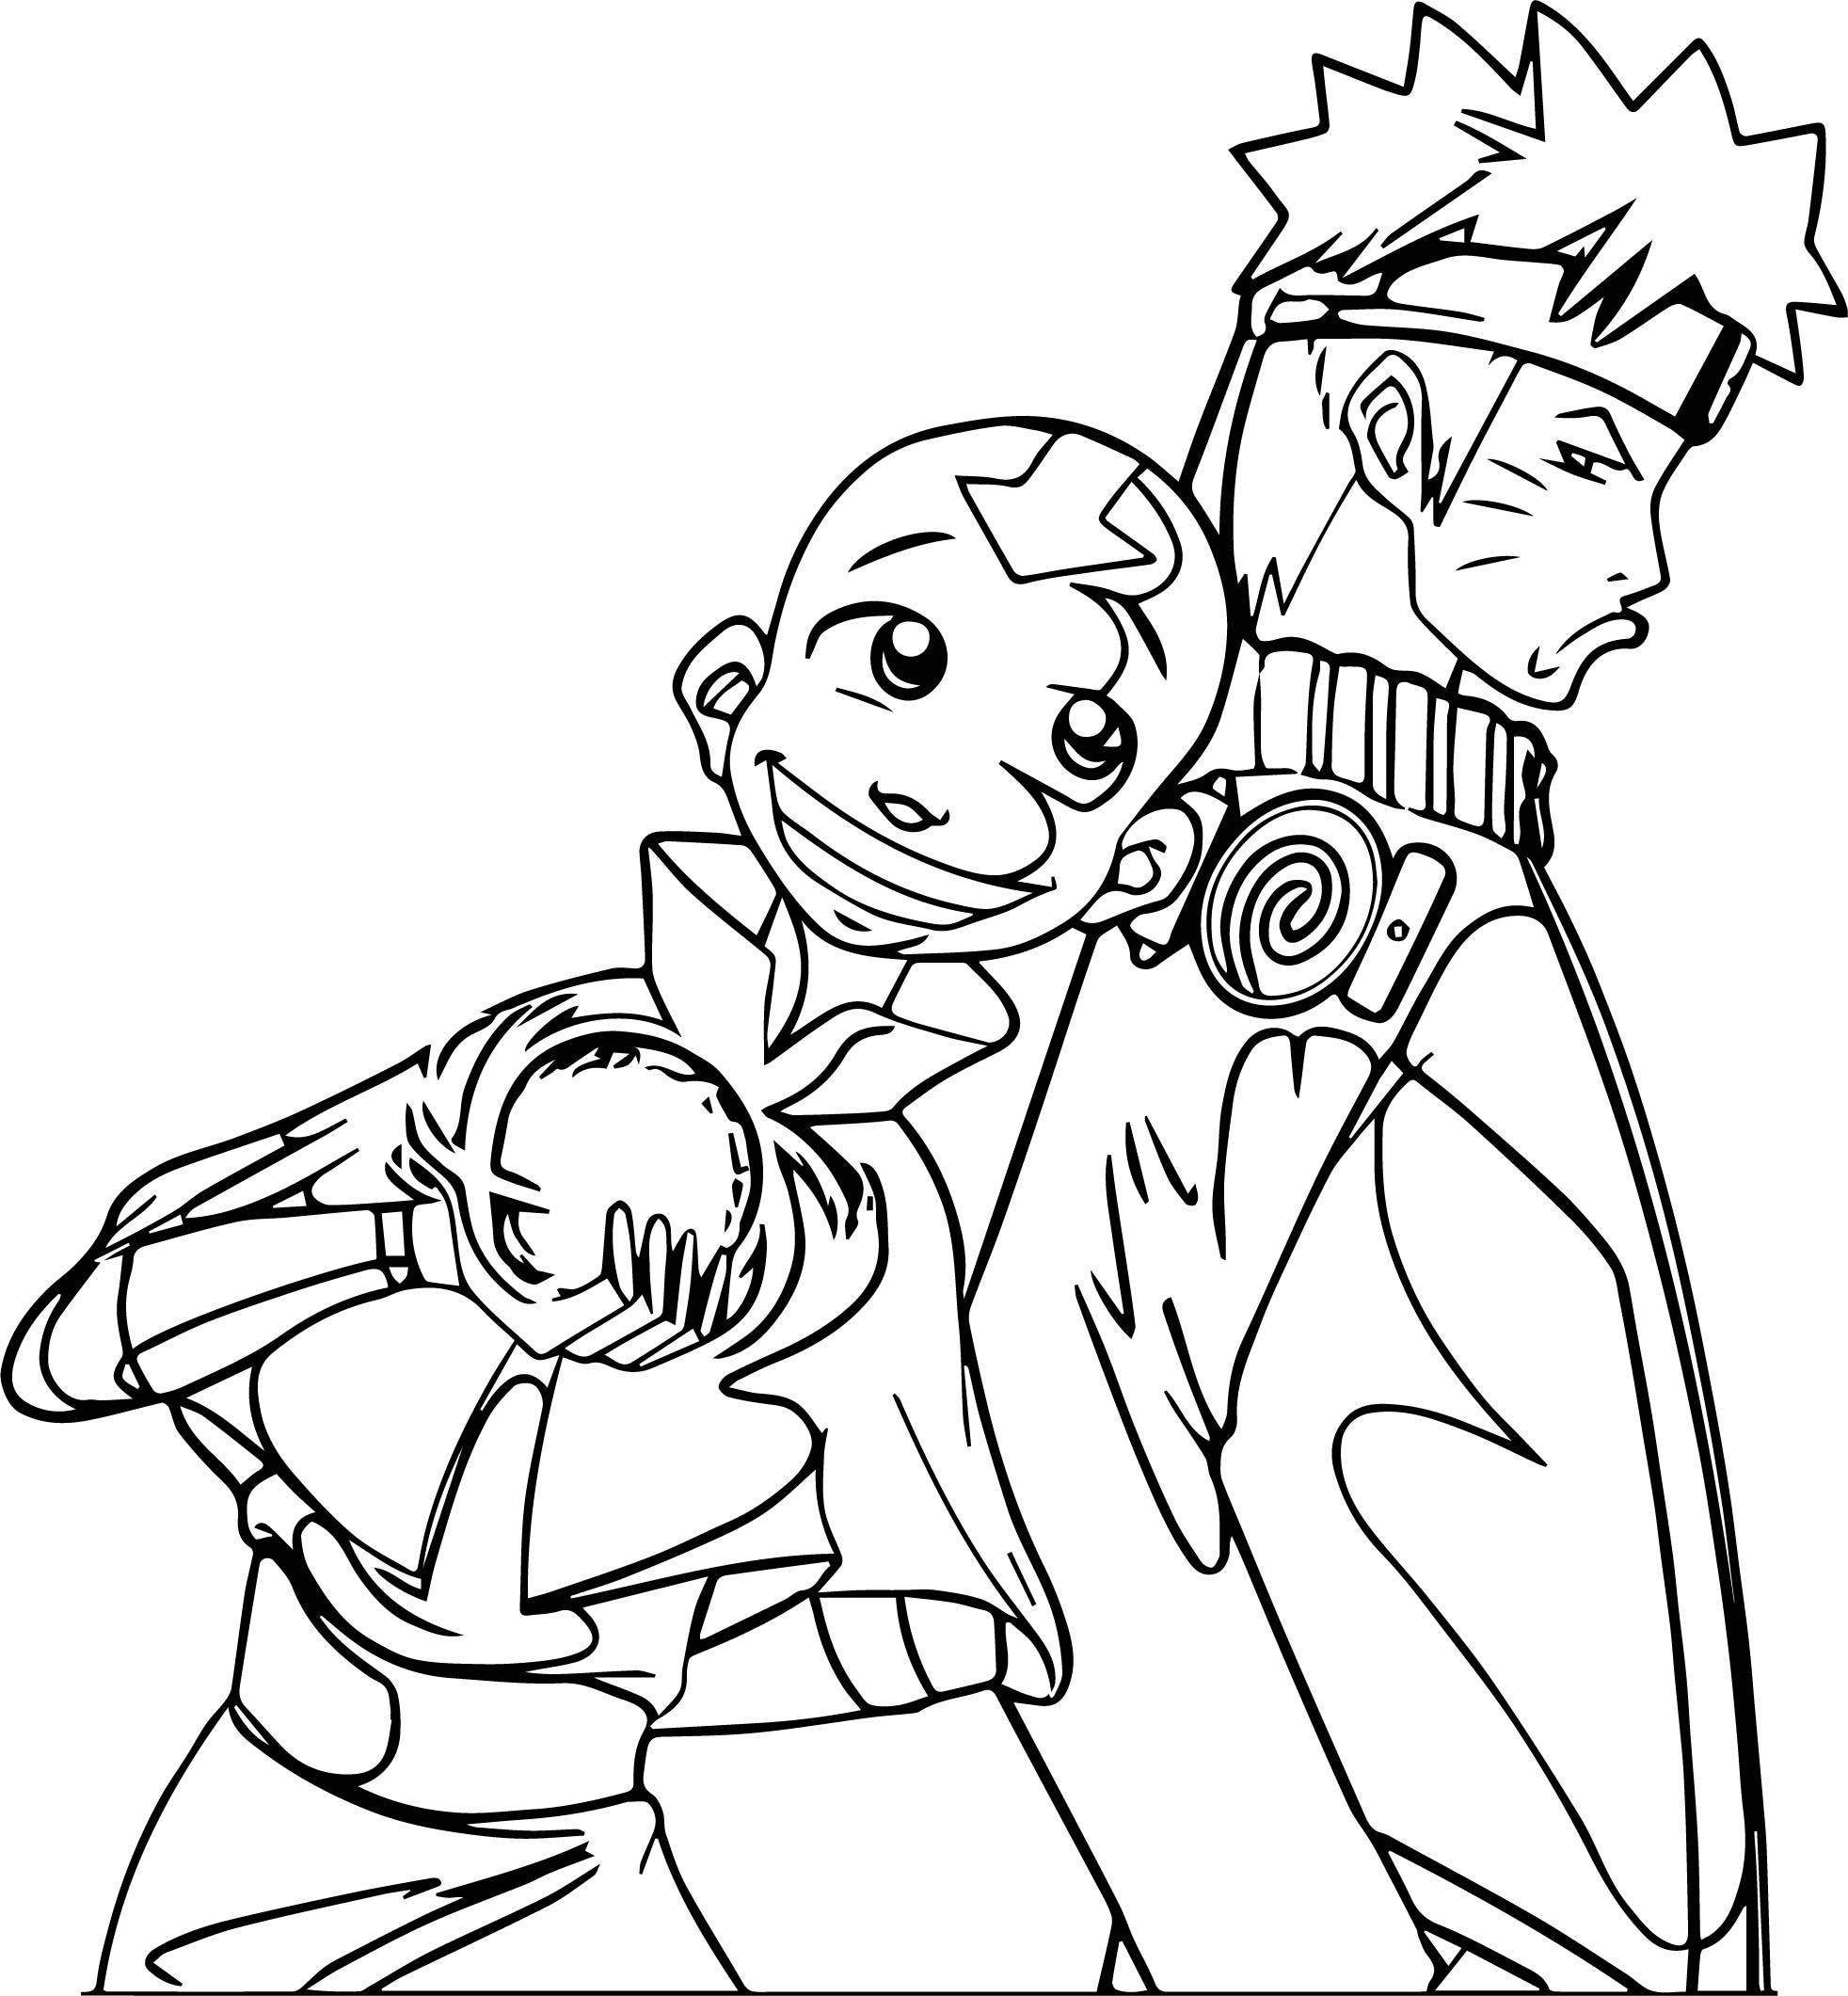 Naruto And Aang Jokerskull Dovglu Avatar Aang Coloring Page